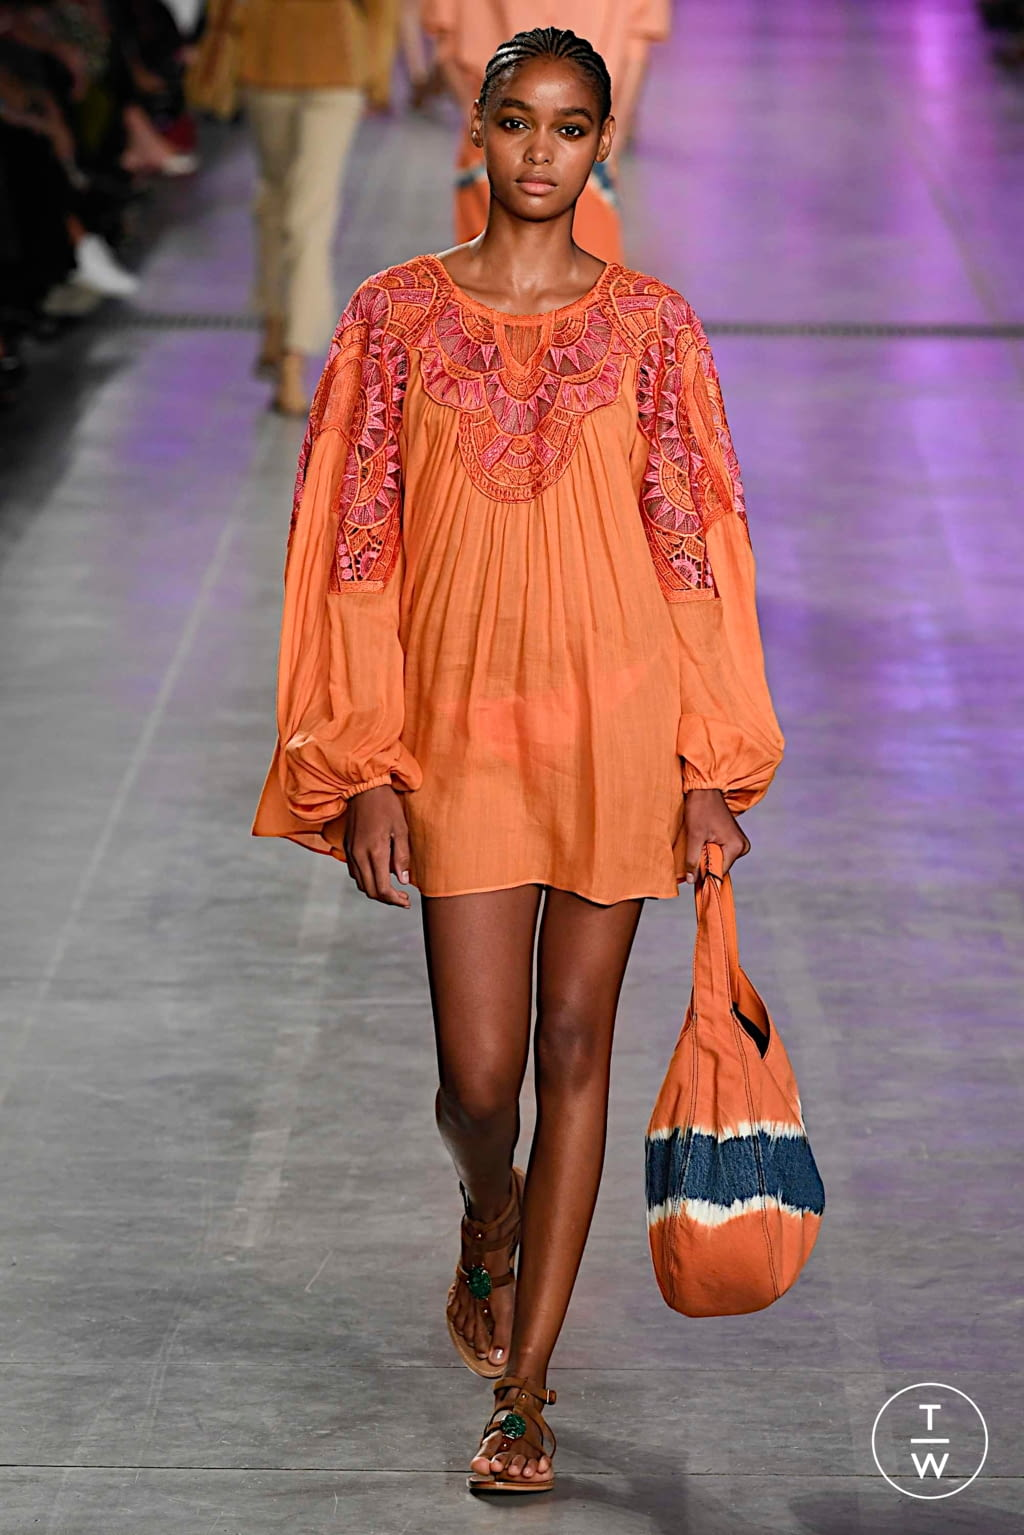 Fashion Week Milan Spring/Summer 2020 look 17 from the Alberta Ferretti collection 女装